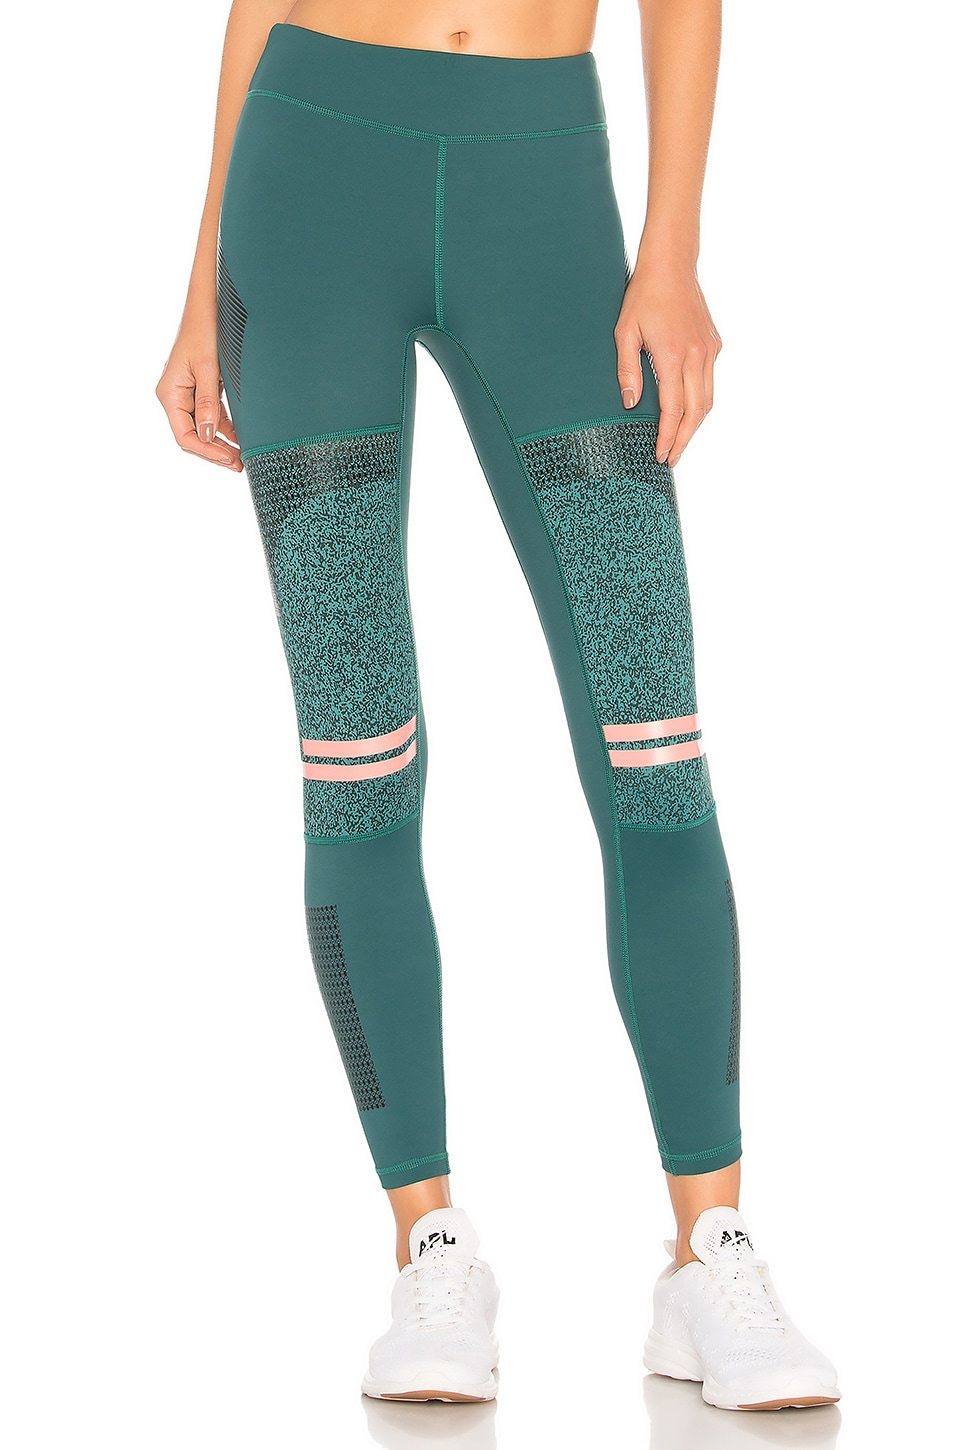 LILYBOD Frankie Legging in Dark Green